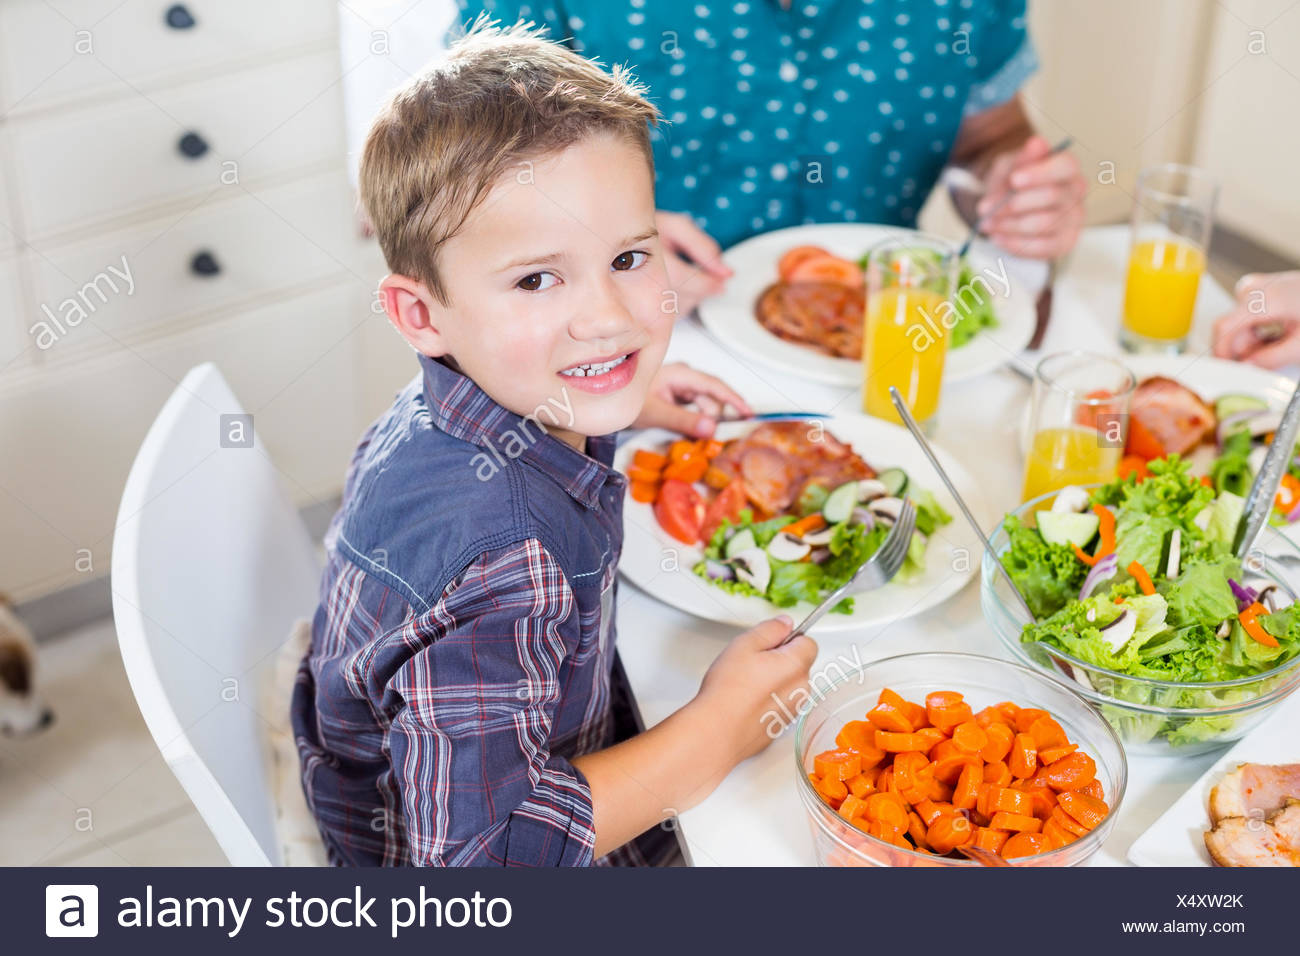 Boy sitting at dining table smiling - Stock Image